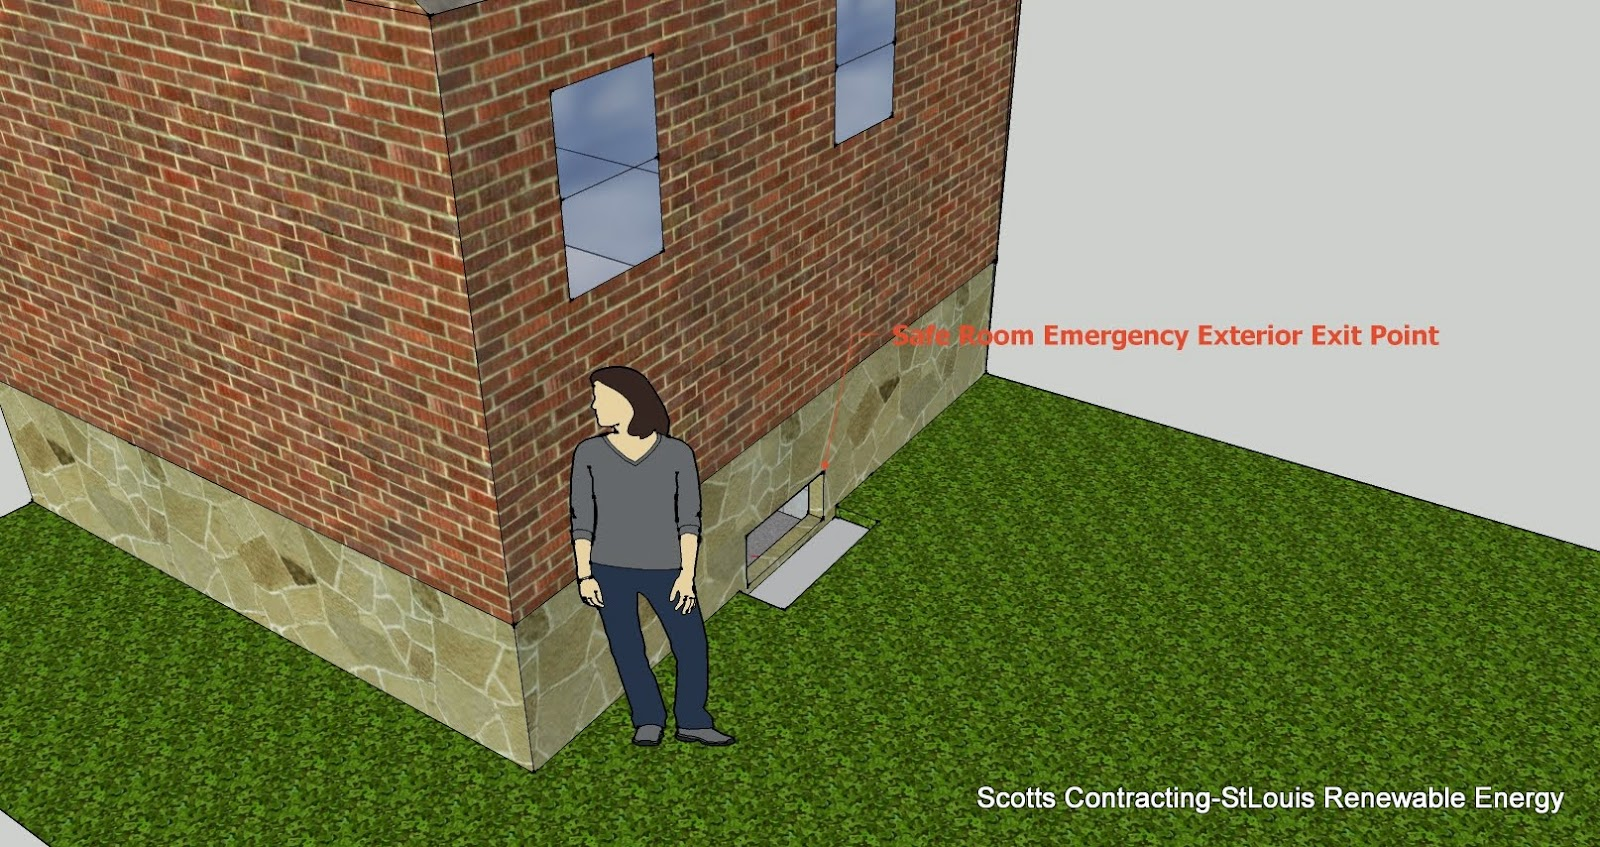 CAD Design by Scotty-Safe Room Exterior Exit Point